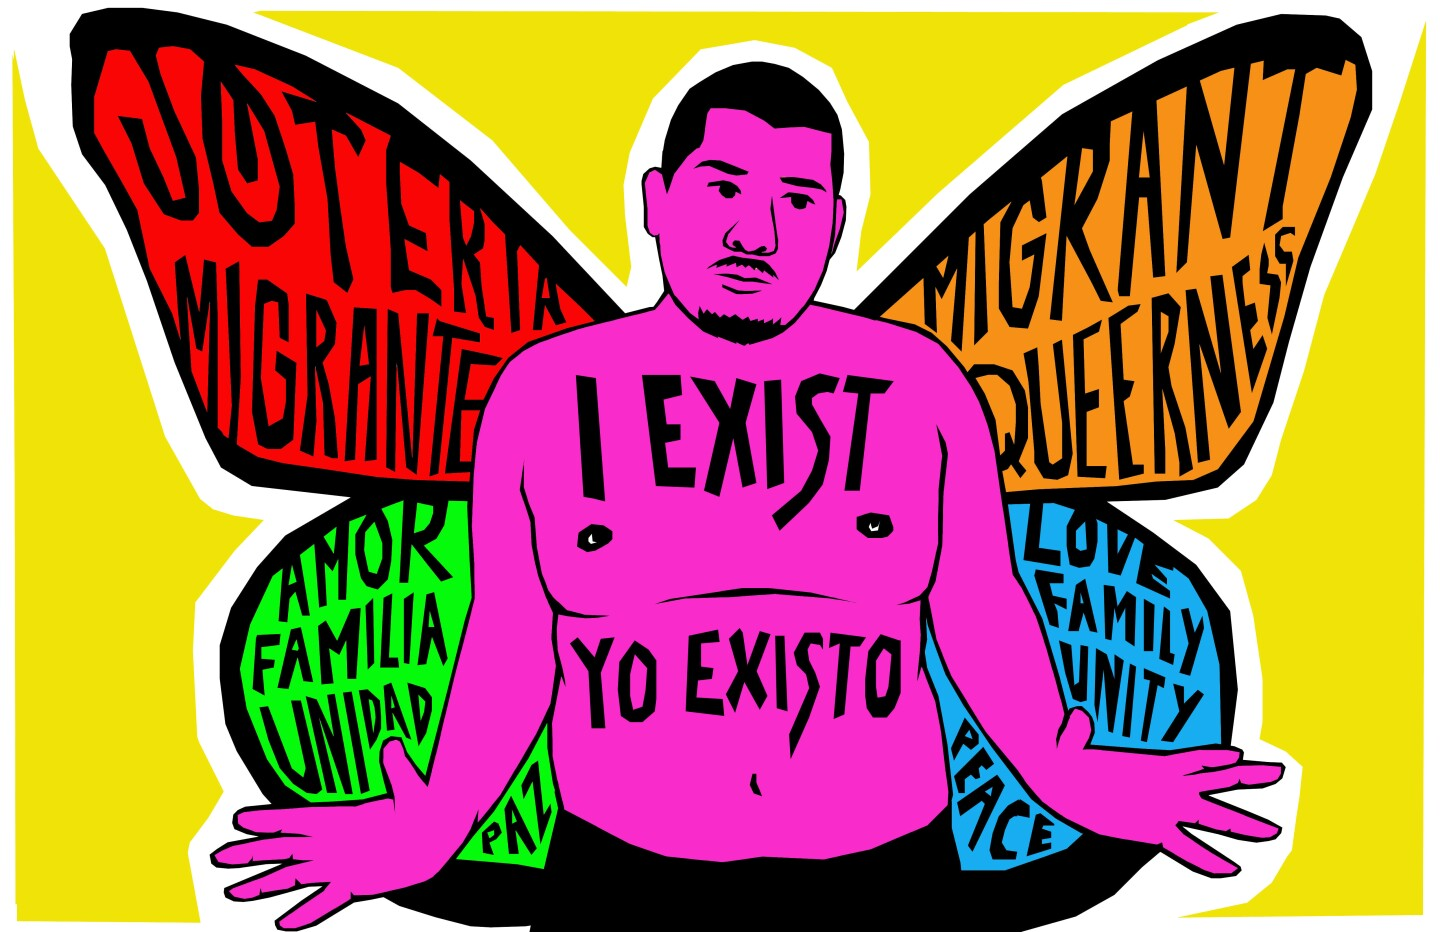 """An illustration by Julio Salgado depicts a pink shirtless individual with multicolored butterfly wings. Each segment of the wing has different words and phrases. The right wing is in English, reading: """"Migrant queerness"""" and """"Love, family, unity, peace."""" The left wing is in Spanish, reading: """"Joteria migrante,"""" and """"Amor, familia, unidad, paz."""""""